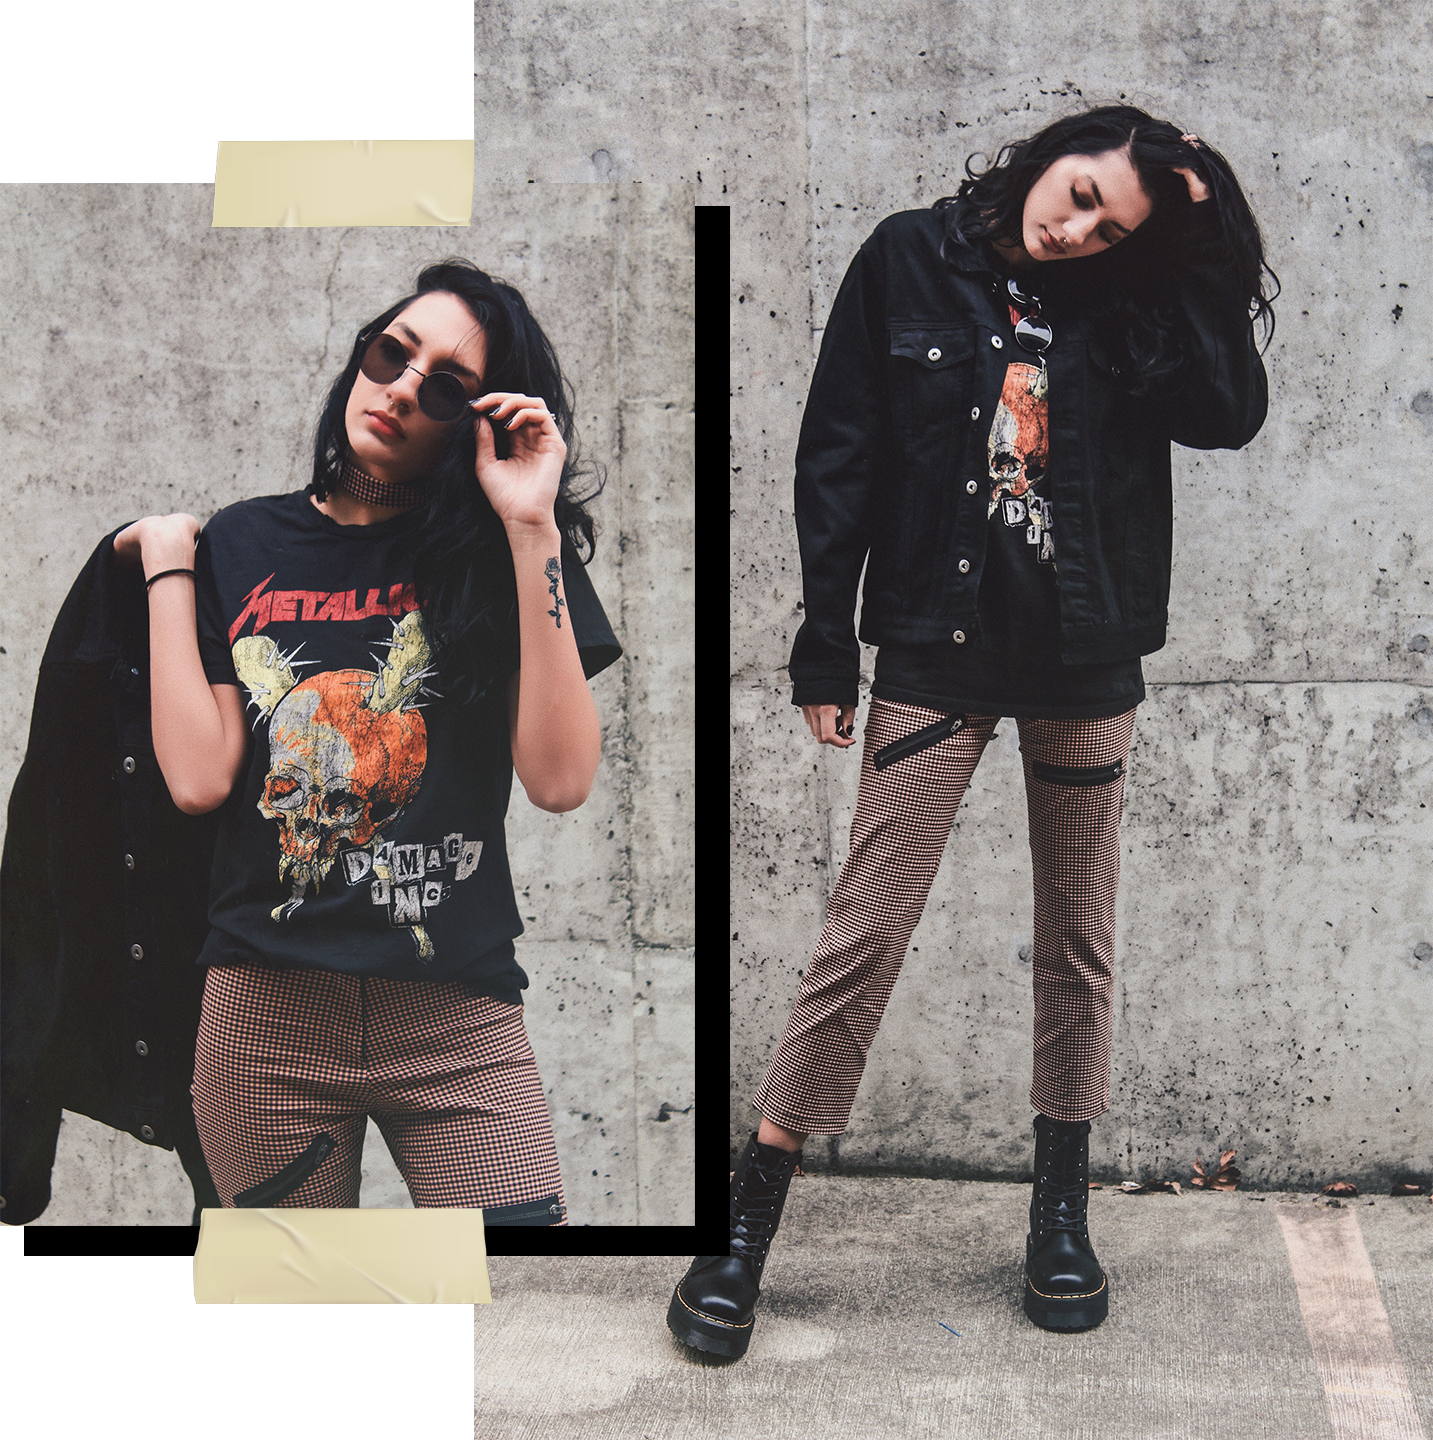 Valfre Pants_ Band Tee Graphic-Print-Pants-Forever-Aniyahlationn.png